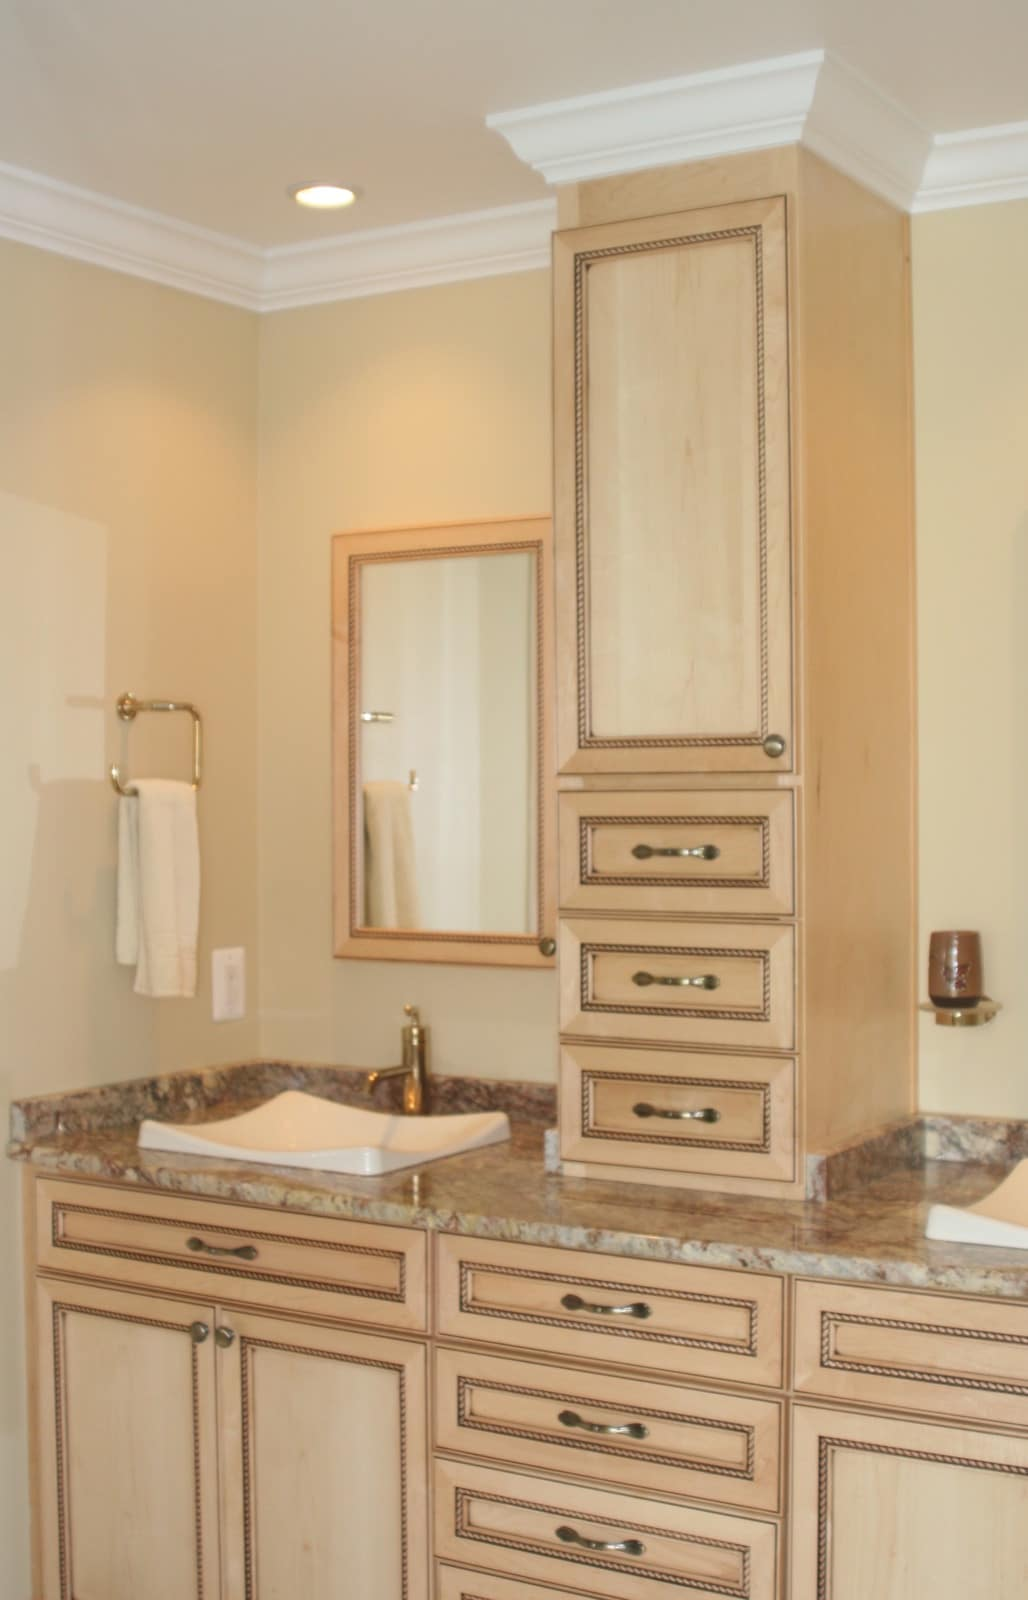 bathroom remodeling contractor maryland,bathroom contractor,add bathroom,interior contractor maryland,new bathroom shower contractor maryland,licensed bathroom contractors,add guest bathroom maryland,finished basements,Accessable senior bathroom design,disabled veterans home modifications,bathroom remodeling contractor,baltimore home remodeling,home remodeling baltimore